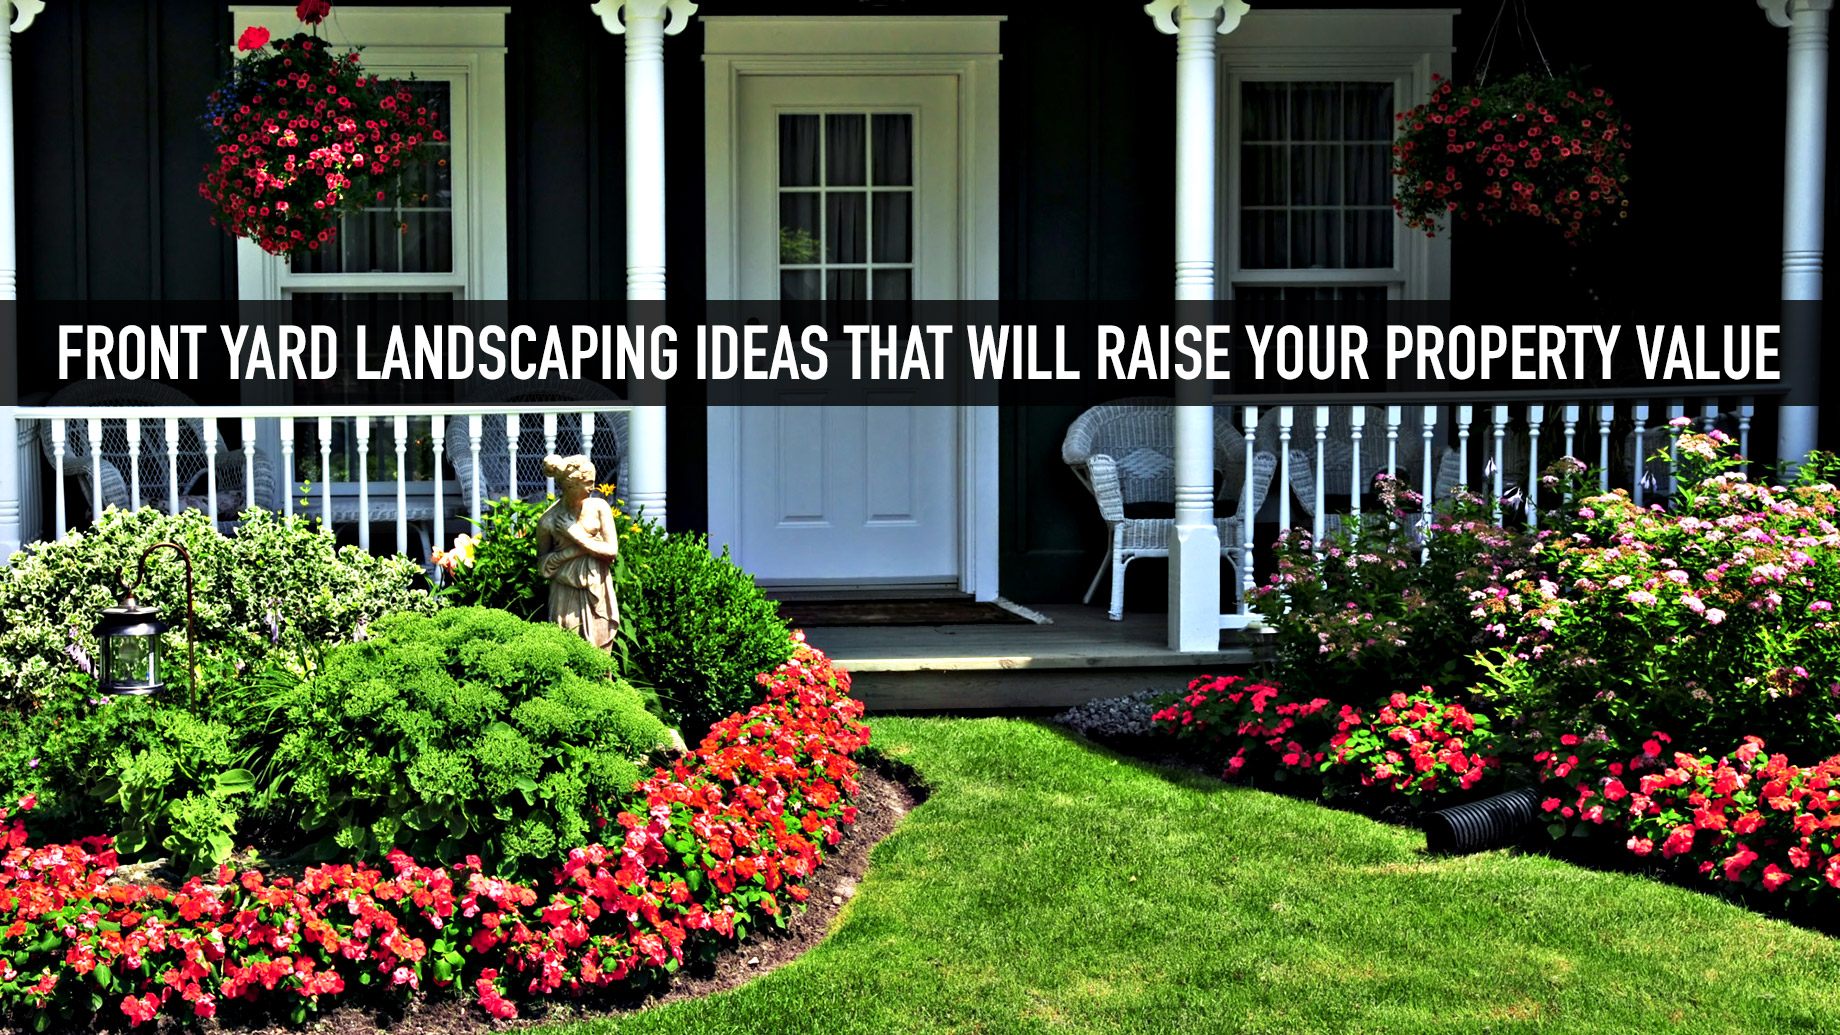 Front Yard Landscaping Ideas That Will Raise Your Property Value